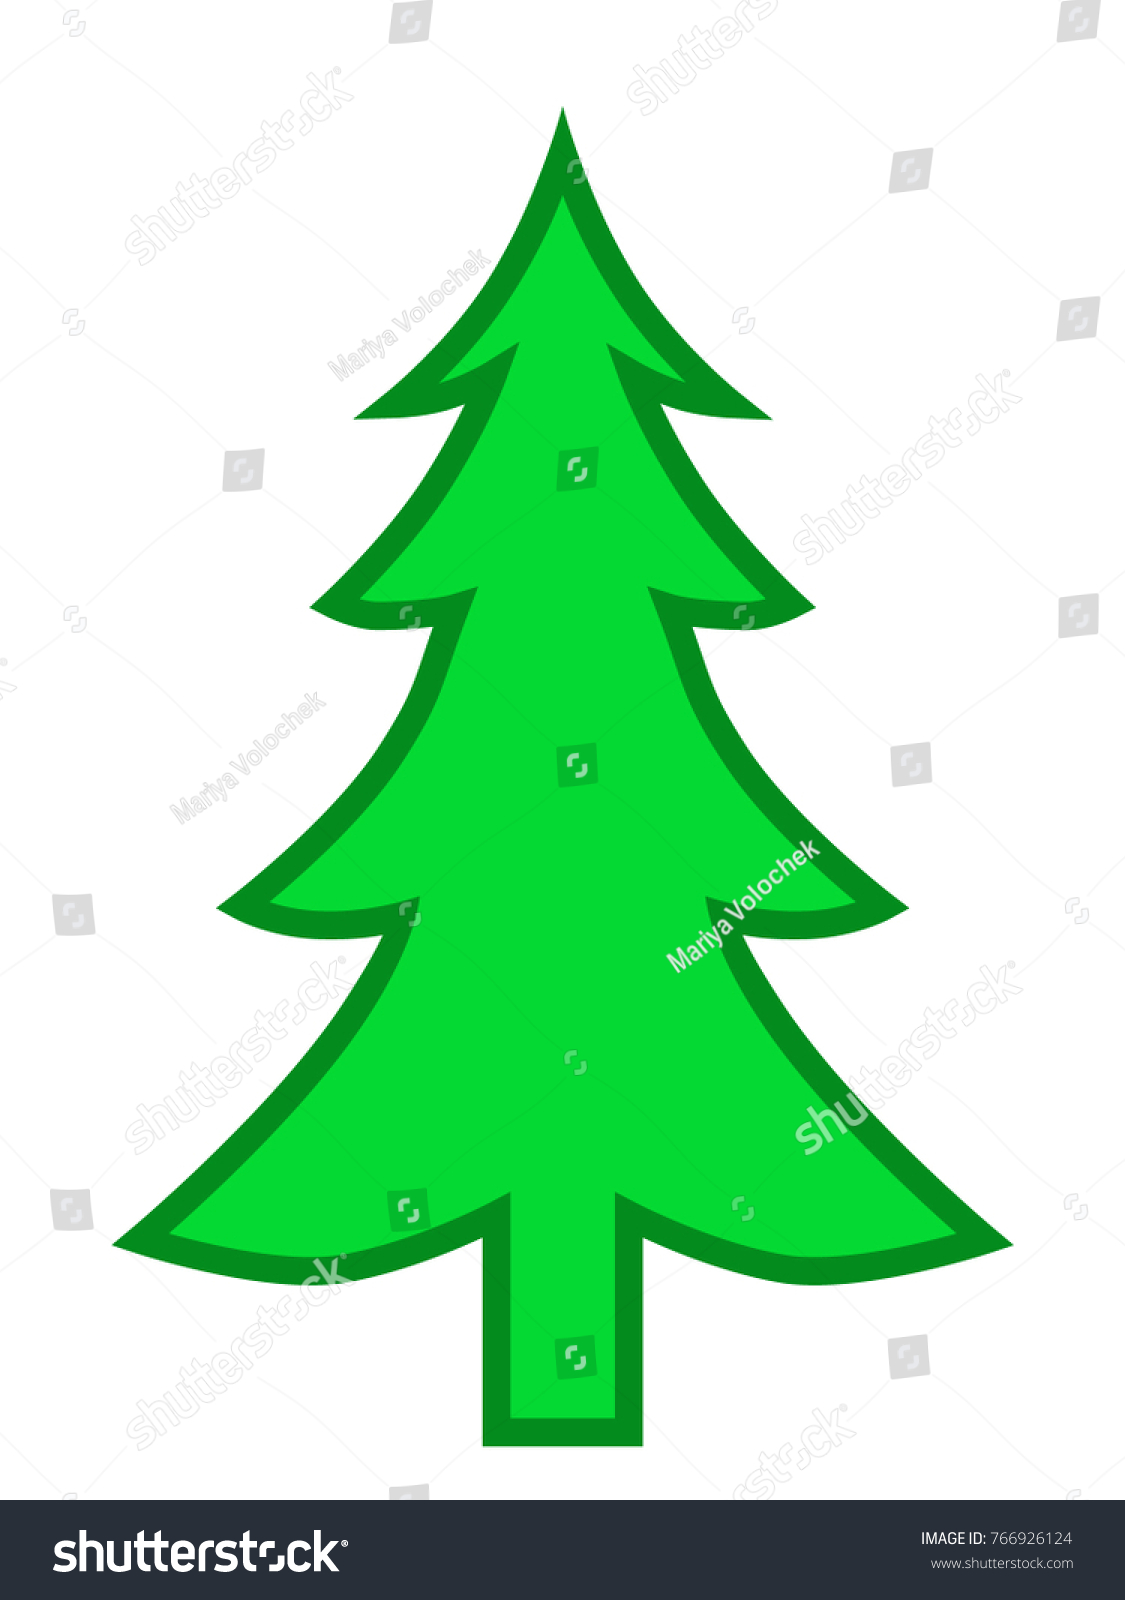 Green Christmas Tree Isolated Vector Color Stock Vector 766926124 ...